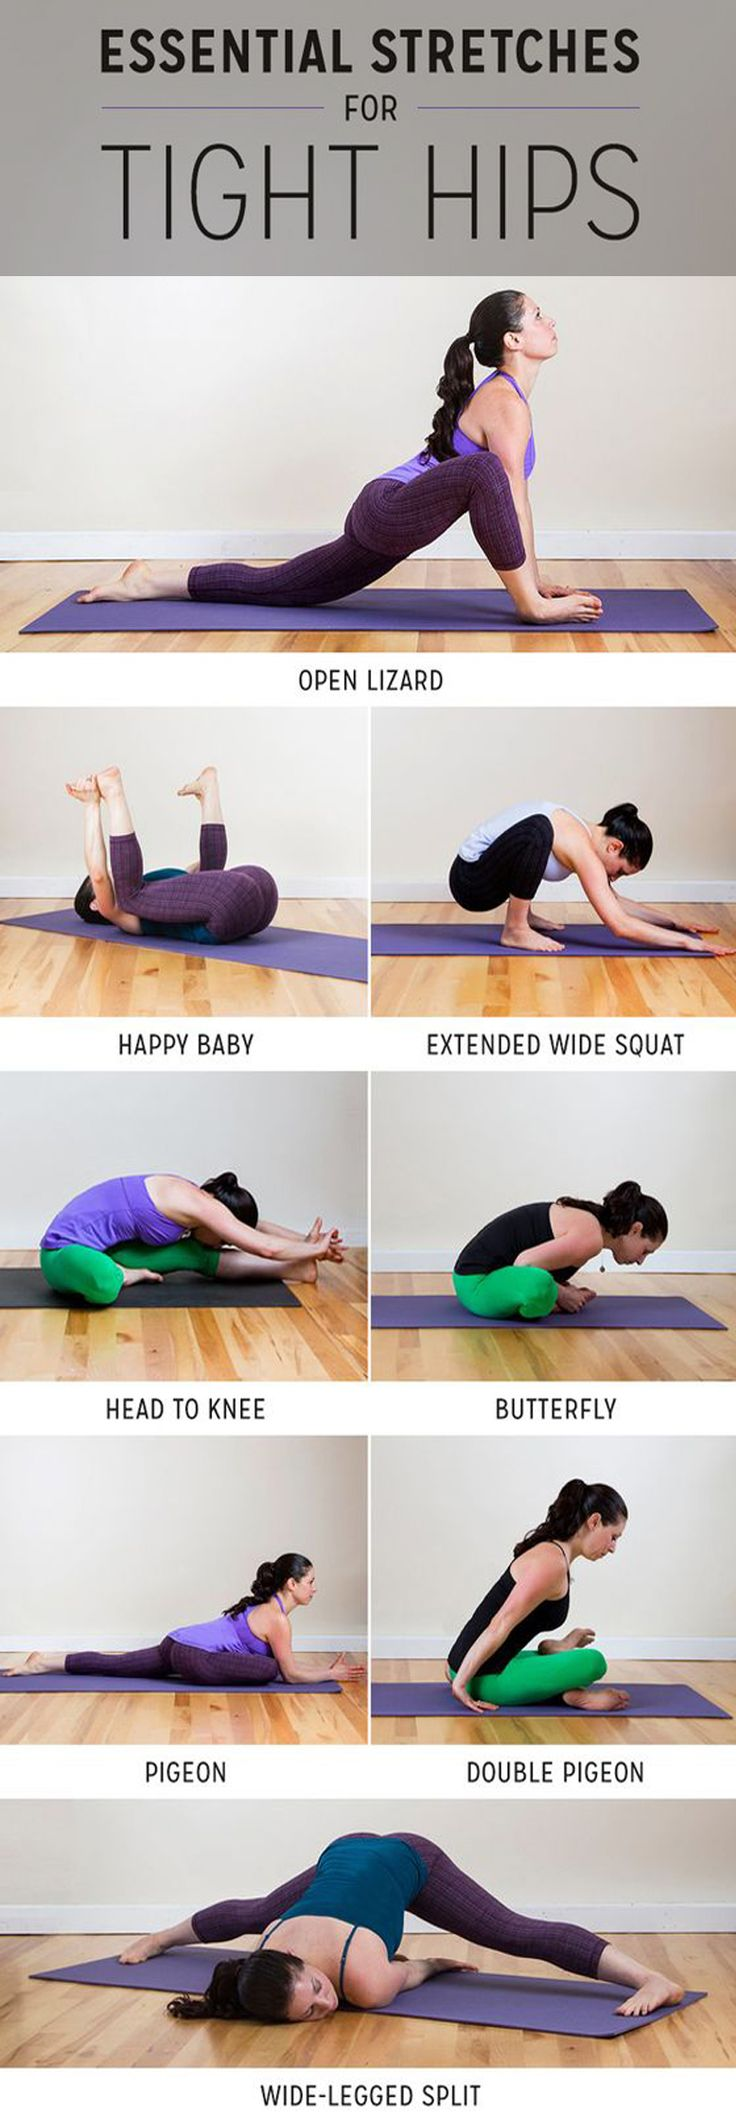 8 Stretches Your Tight Hips Are Begging For - Skinnyan